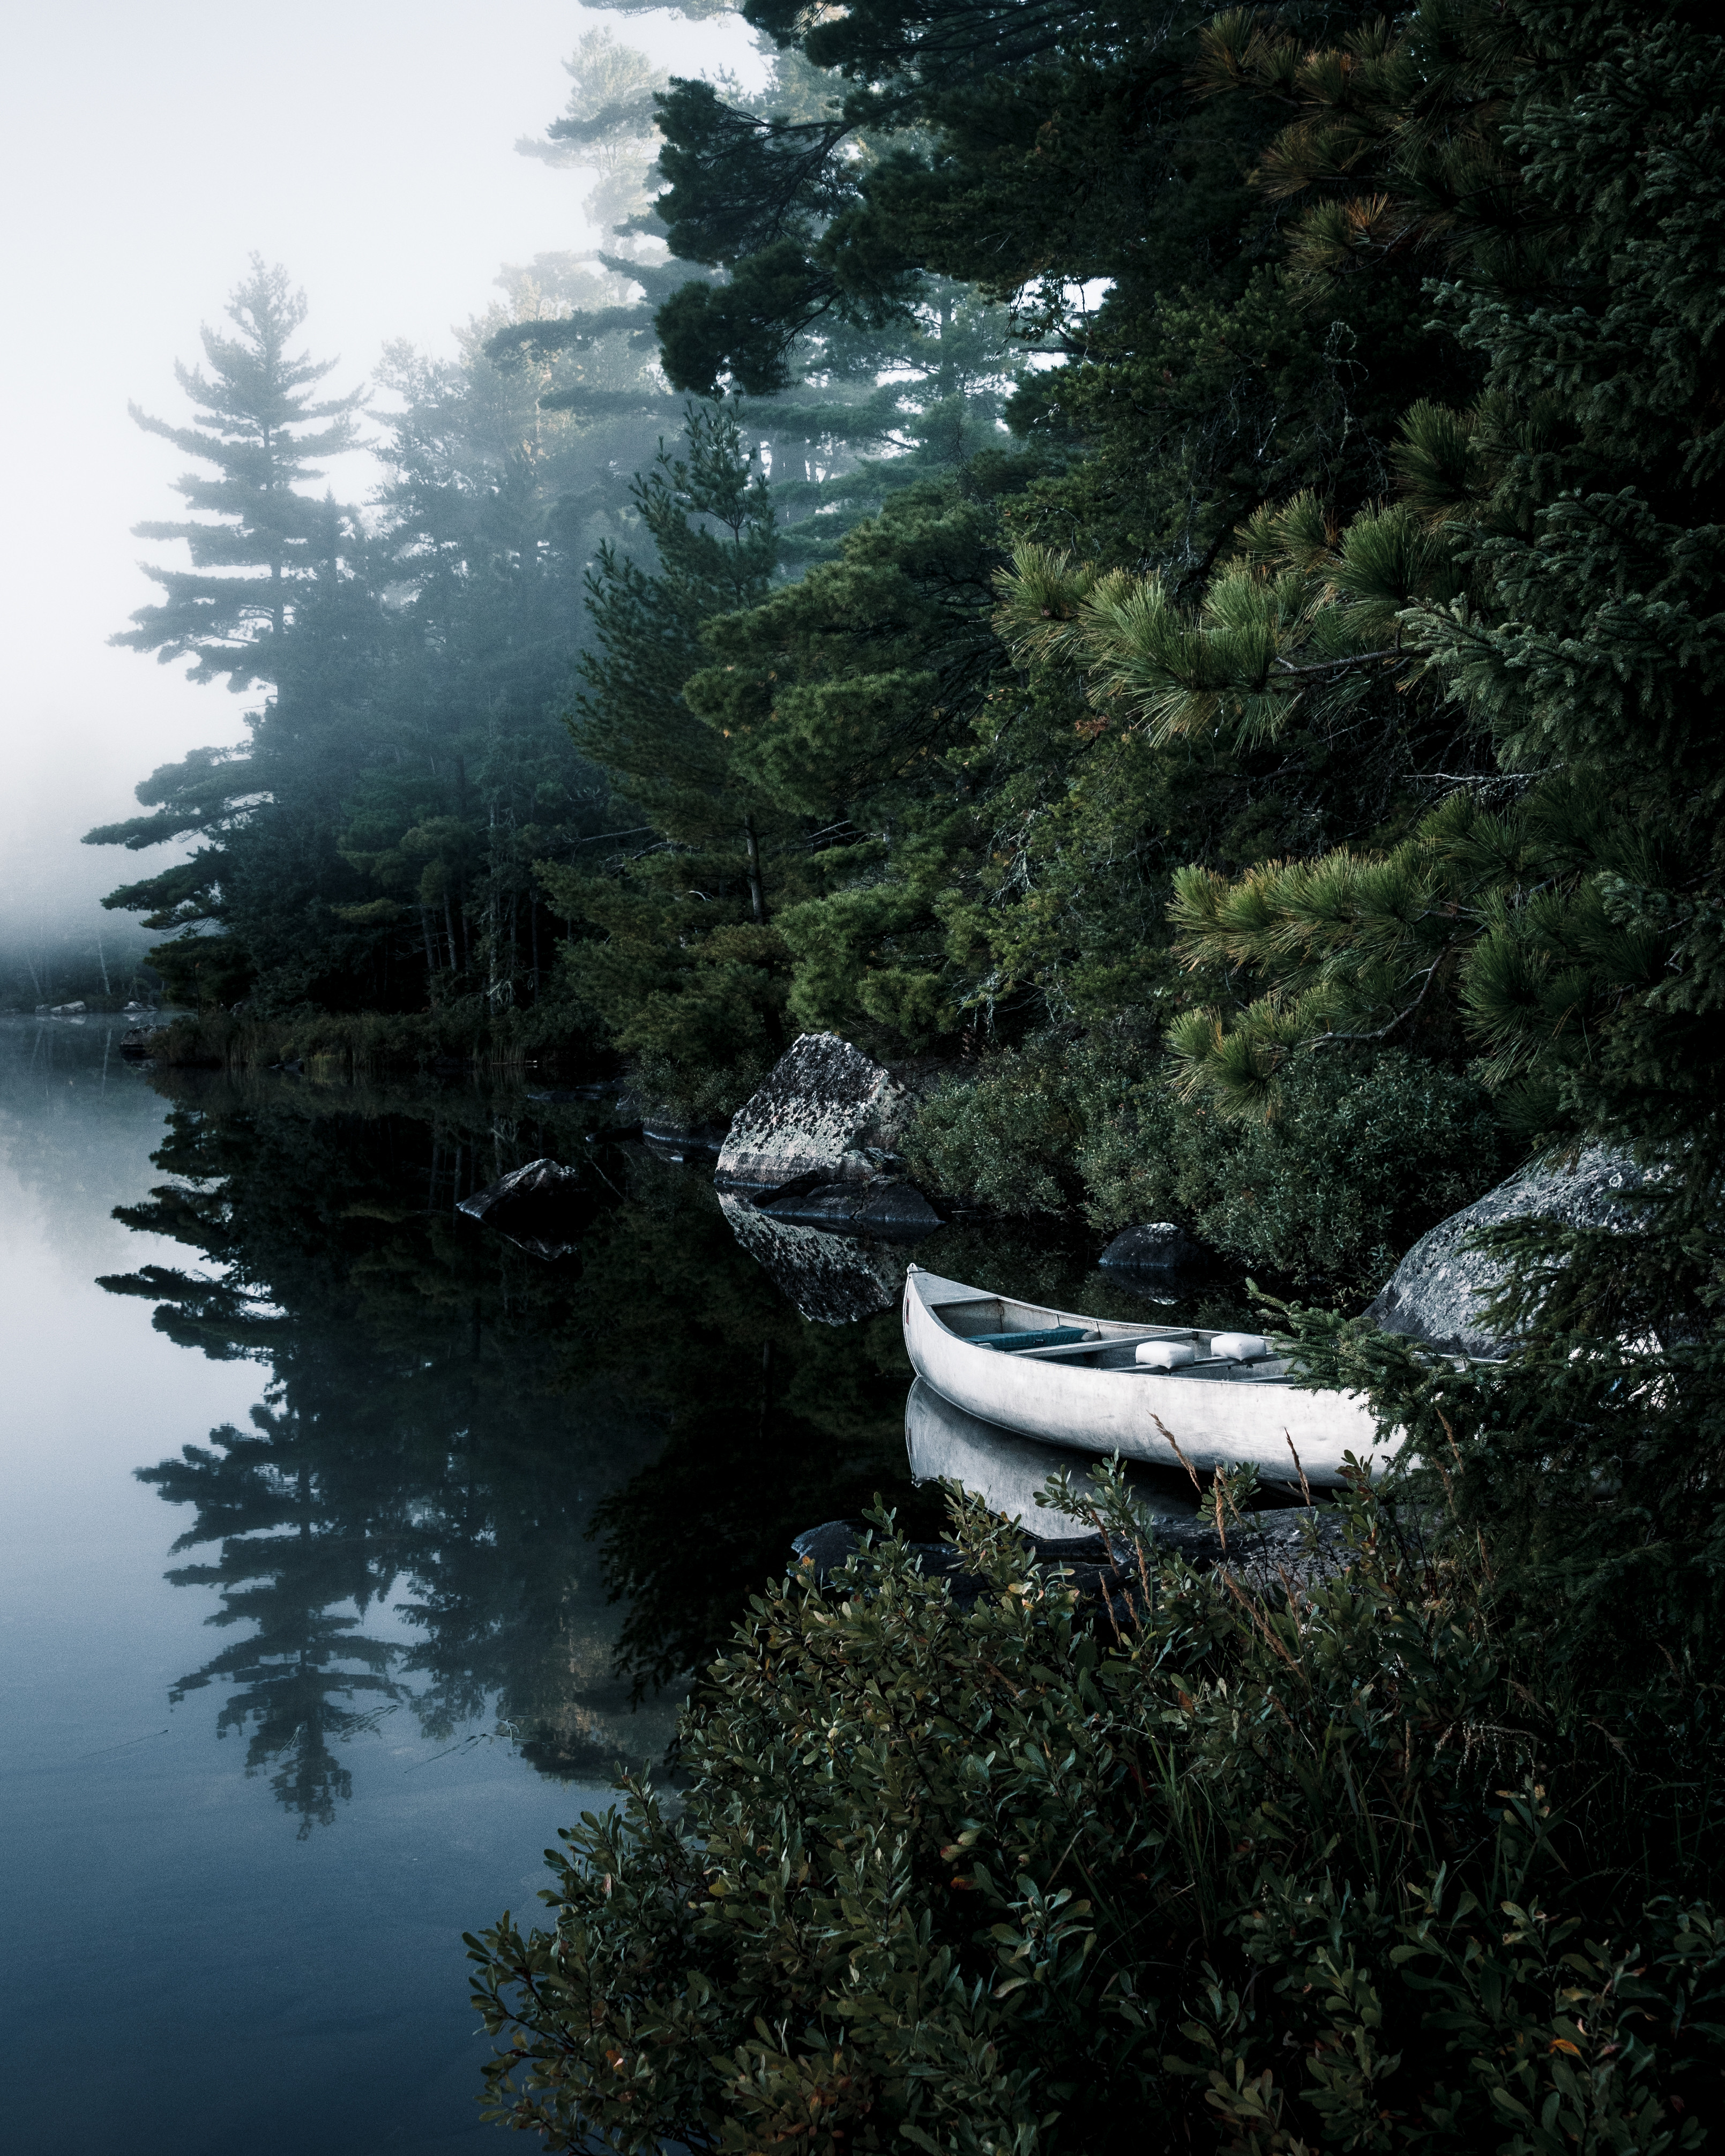 153213 download wallpaper Nature, Boat, Lake, Spruce, Fir, Branches, Trees screensavers and pictures for free